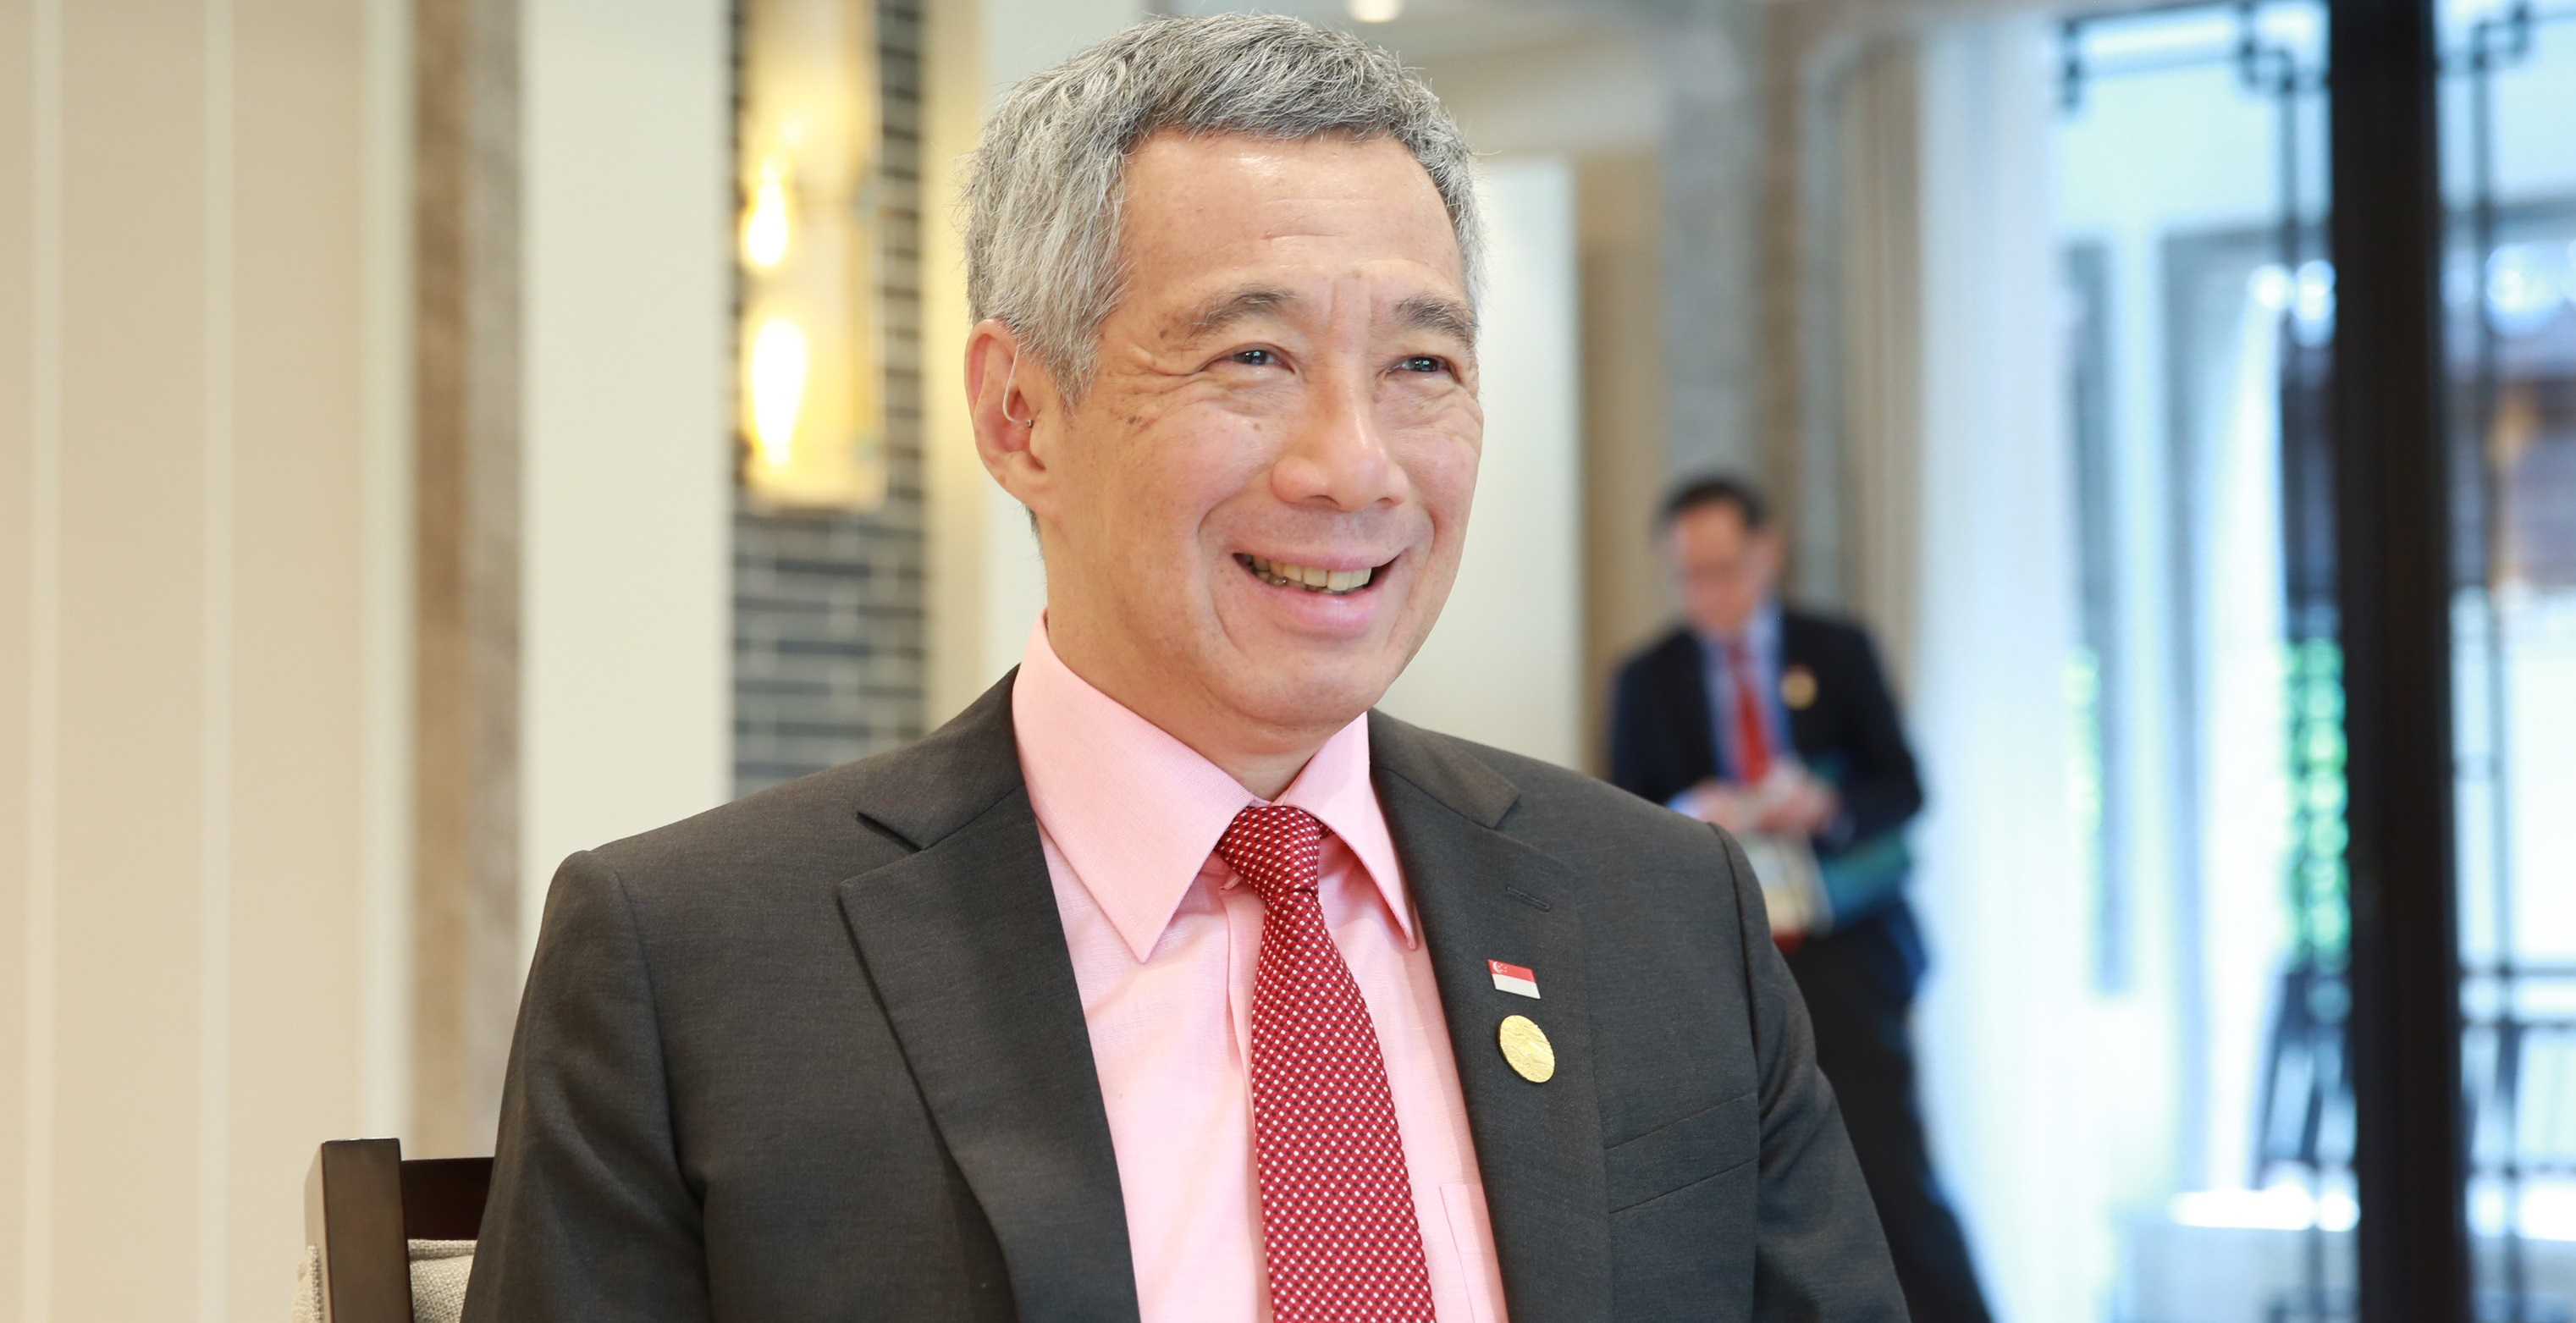 Lee Hsien Loong, Prime Minister of Singapore.